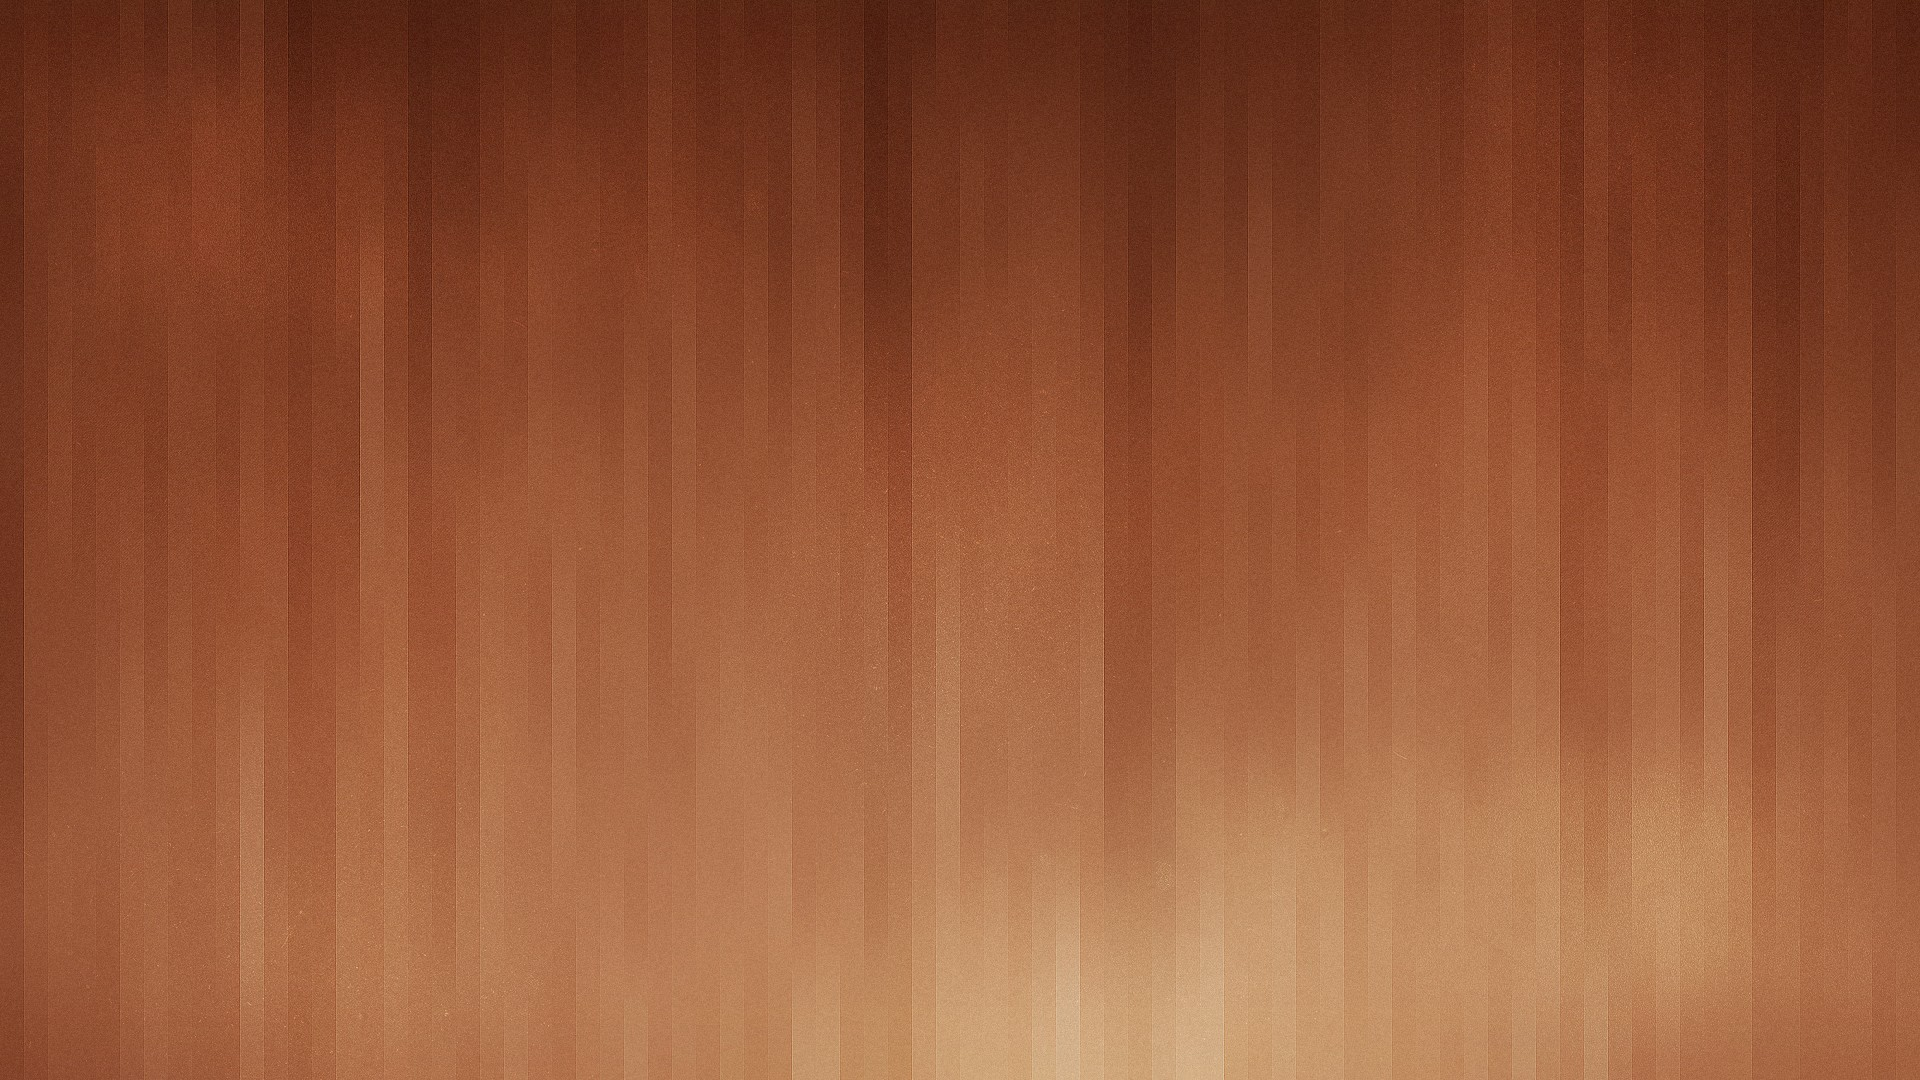 Awesome Wood Wallpaper 41393 1920x1080 Px